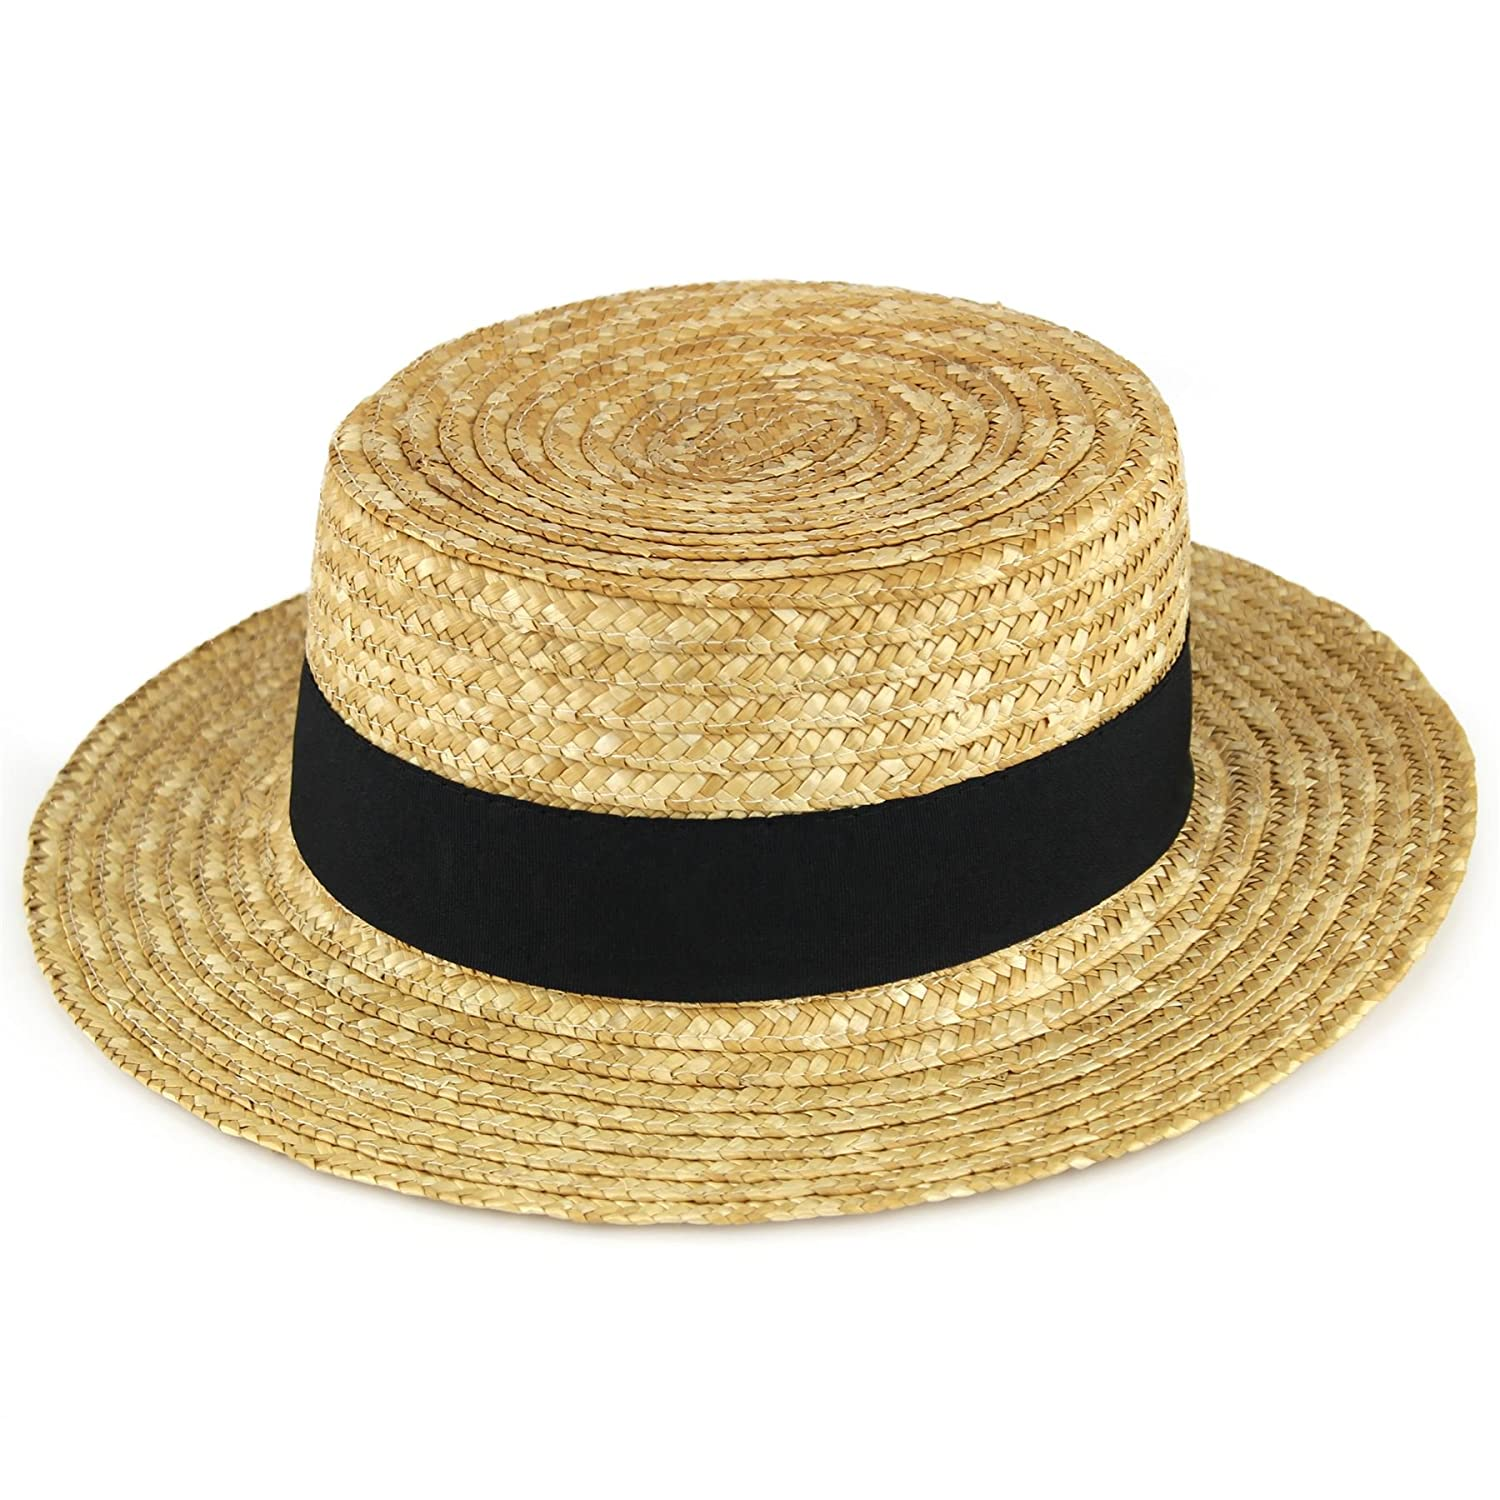 1cf2f0bfa50 Hawkins Straw boater hat sailor skimmer black band summer sun   Amazon.co.uk  Clothing